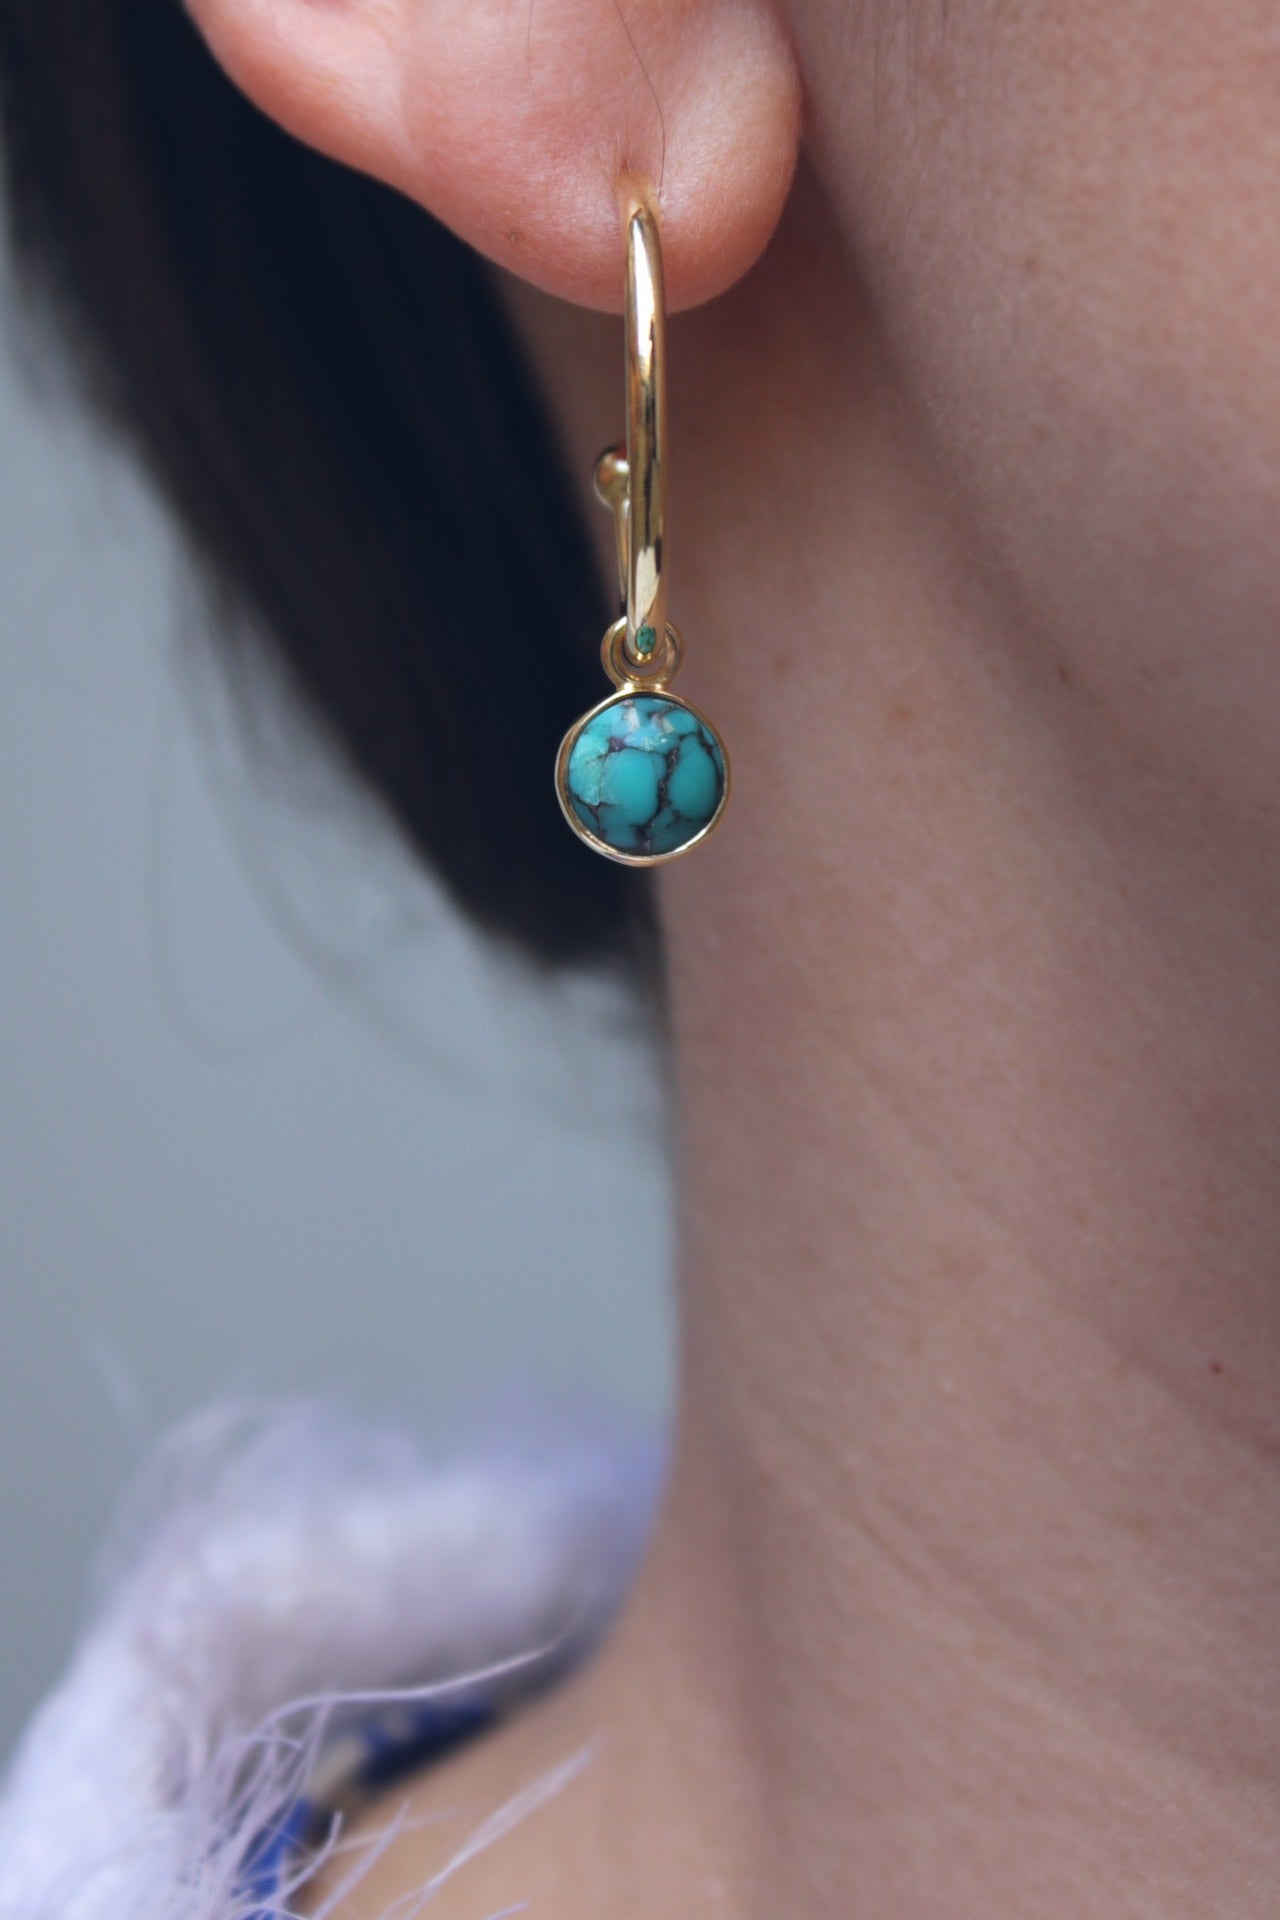 Moira Patience Fine Jewellery Bespoke Jewellery Commission Turquoise Ring and Earrings in Edinburgh